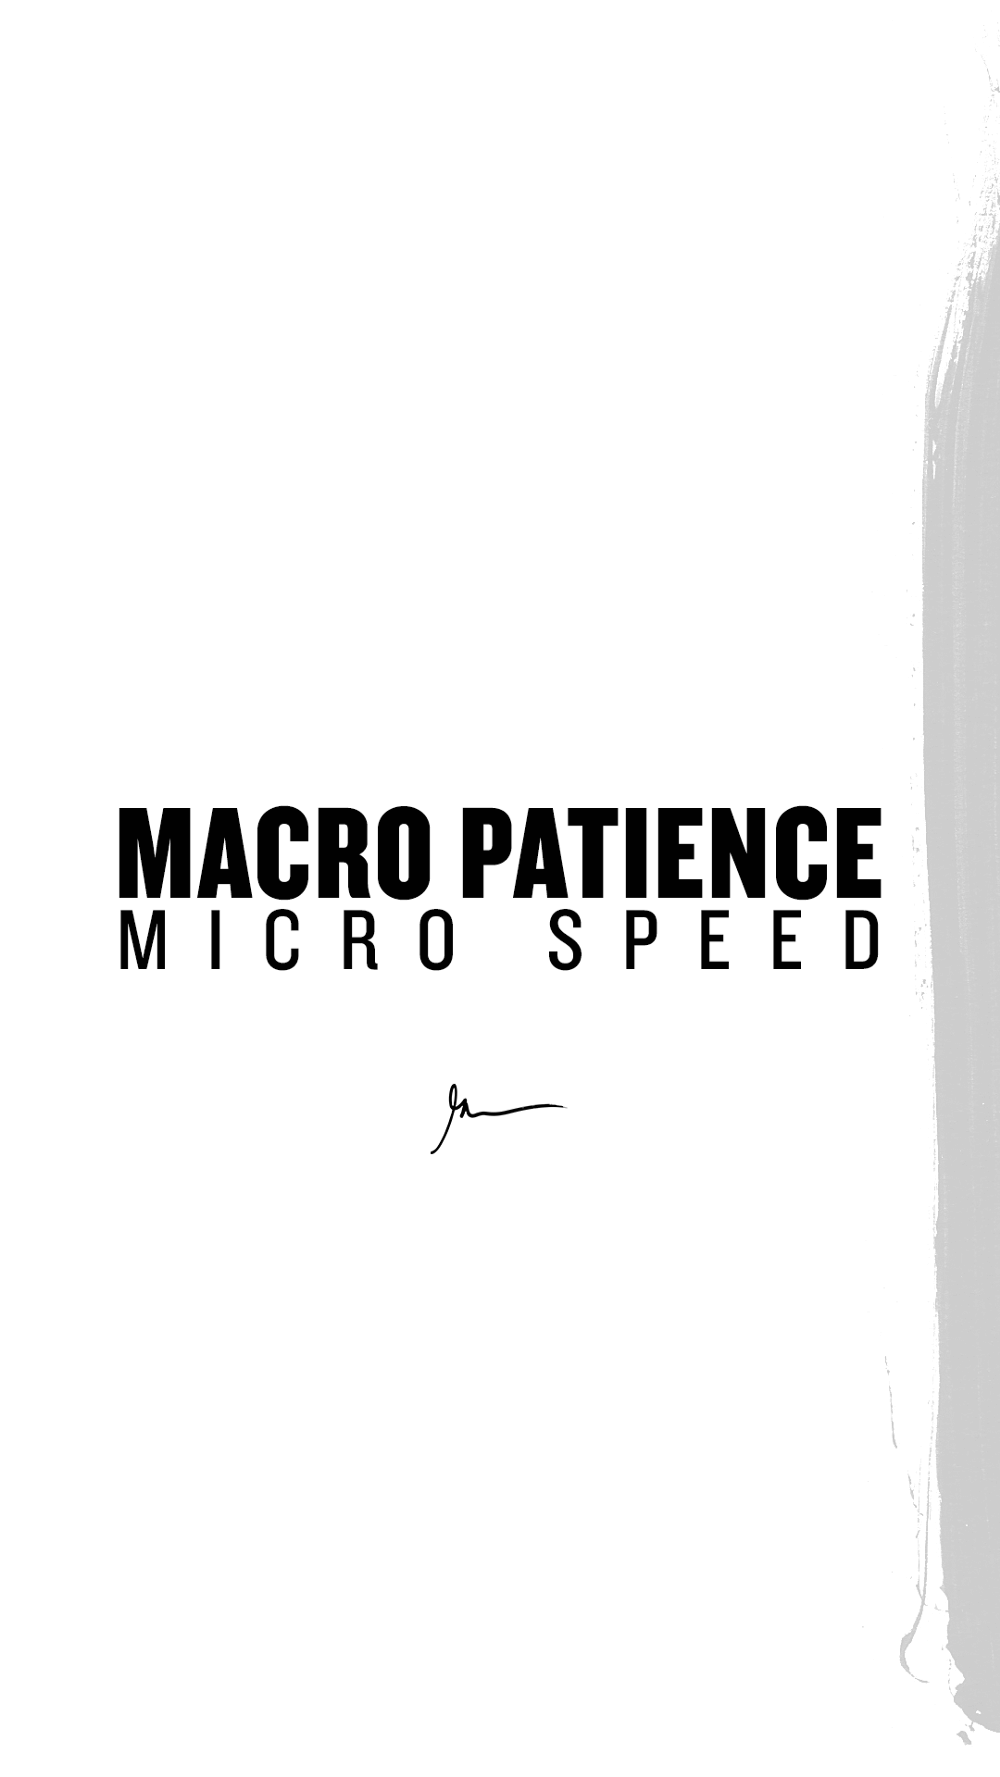 Macro Patience Micro Speed